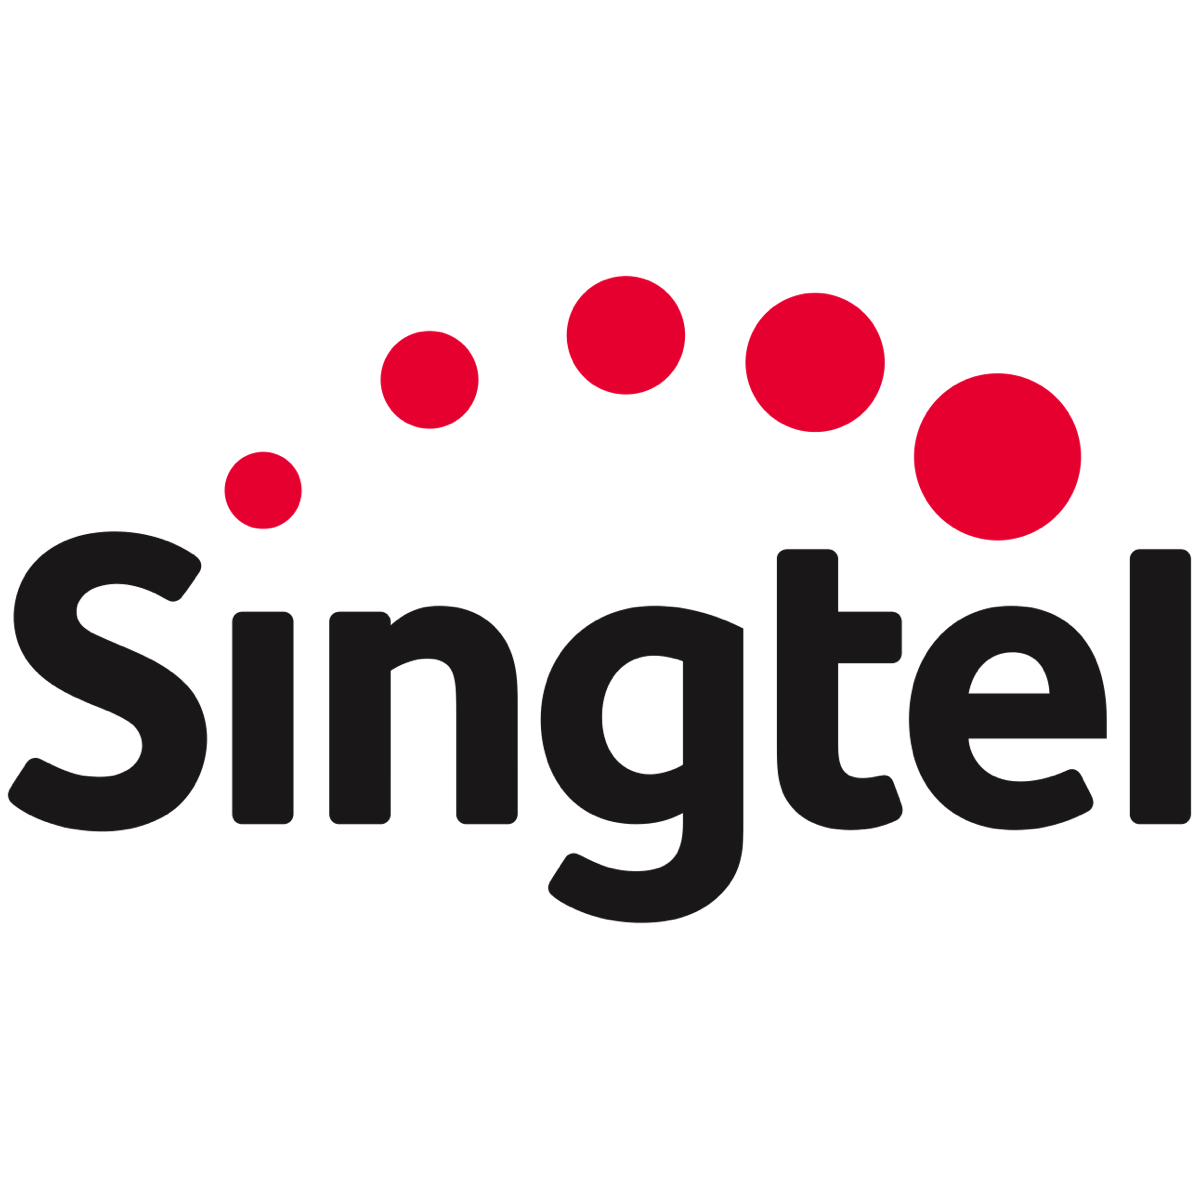 SingTel - Maybank Kim Eng Research 2018-08-23: Relief Rally Thanks To Australia